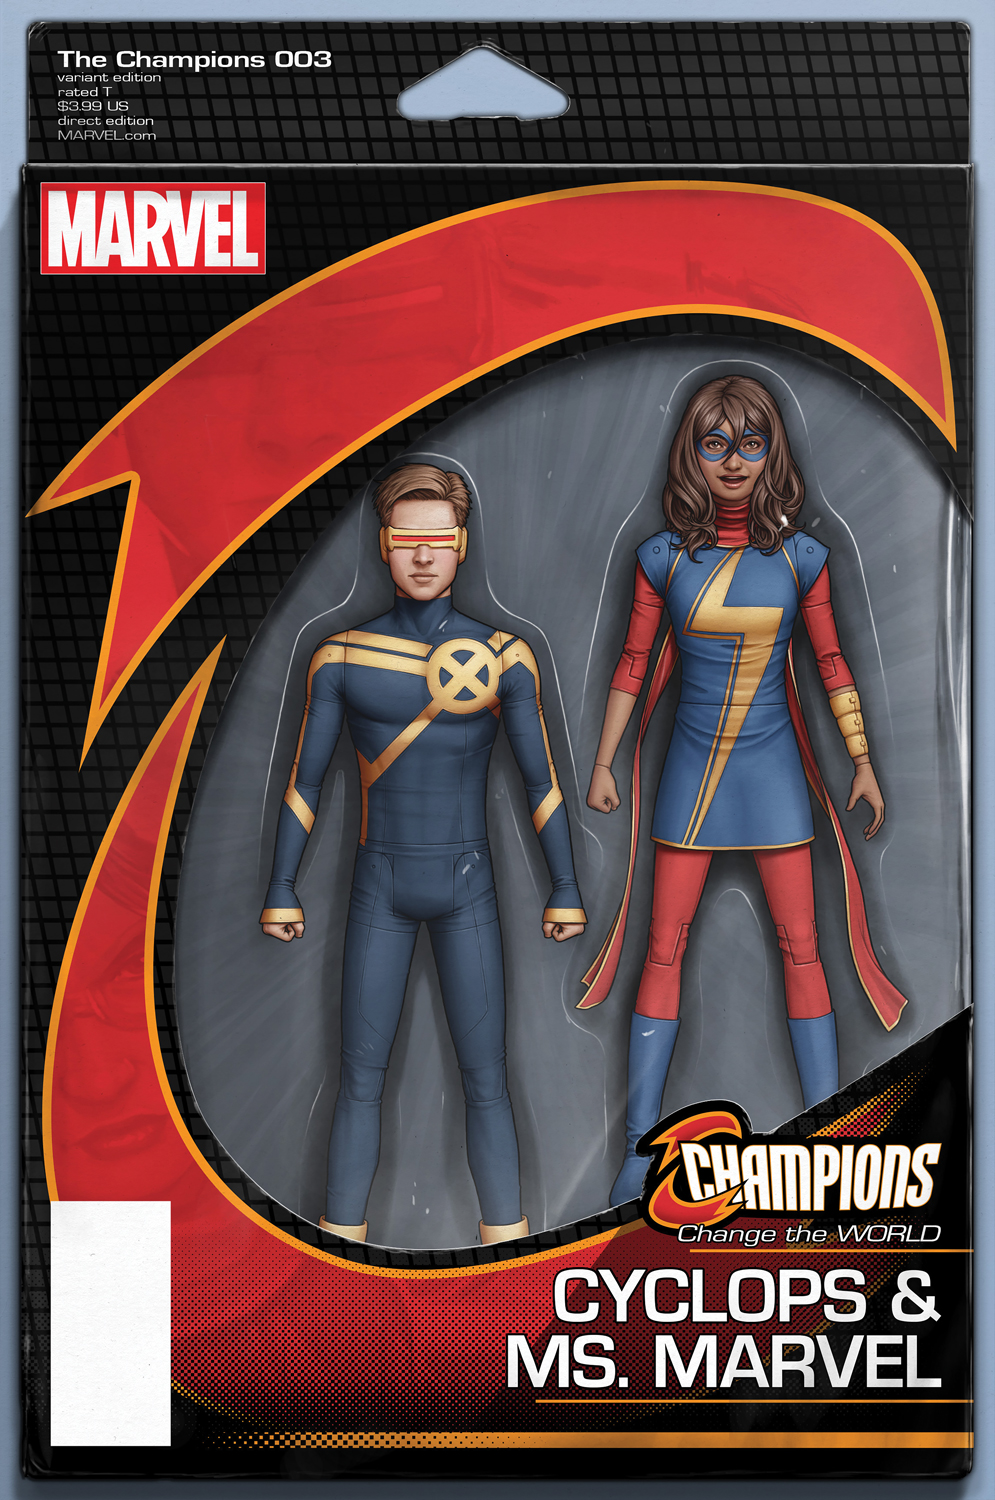 Cover #3 Action Figure variant